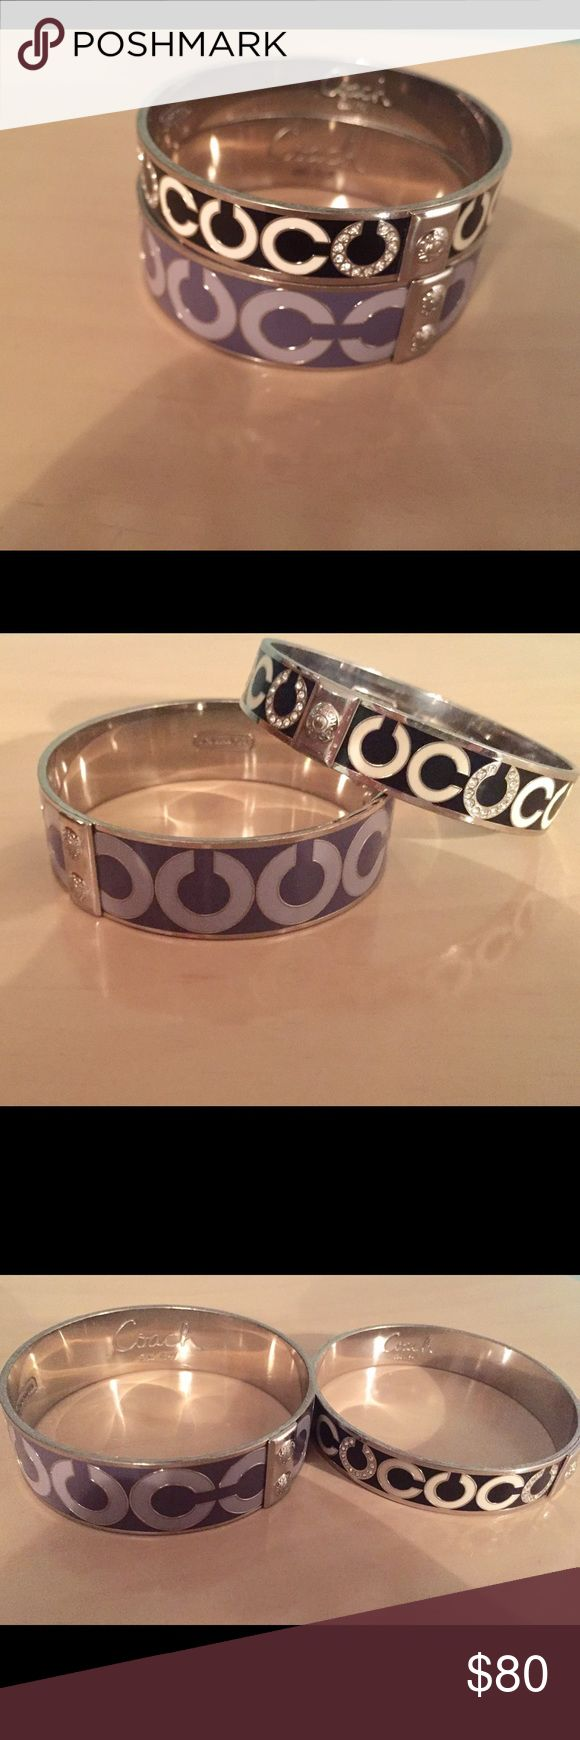 "Coach Bracelets Authentic Coach Bangle Bracelets. Purple and silver. Black and silver. Nice and stylish! Small stones on some of the ""C""s. Selling as a set. Thank you! Coach Jewelry Bracelets"